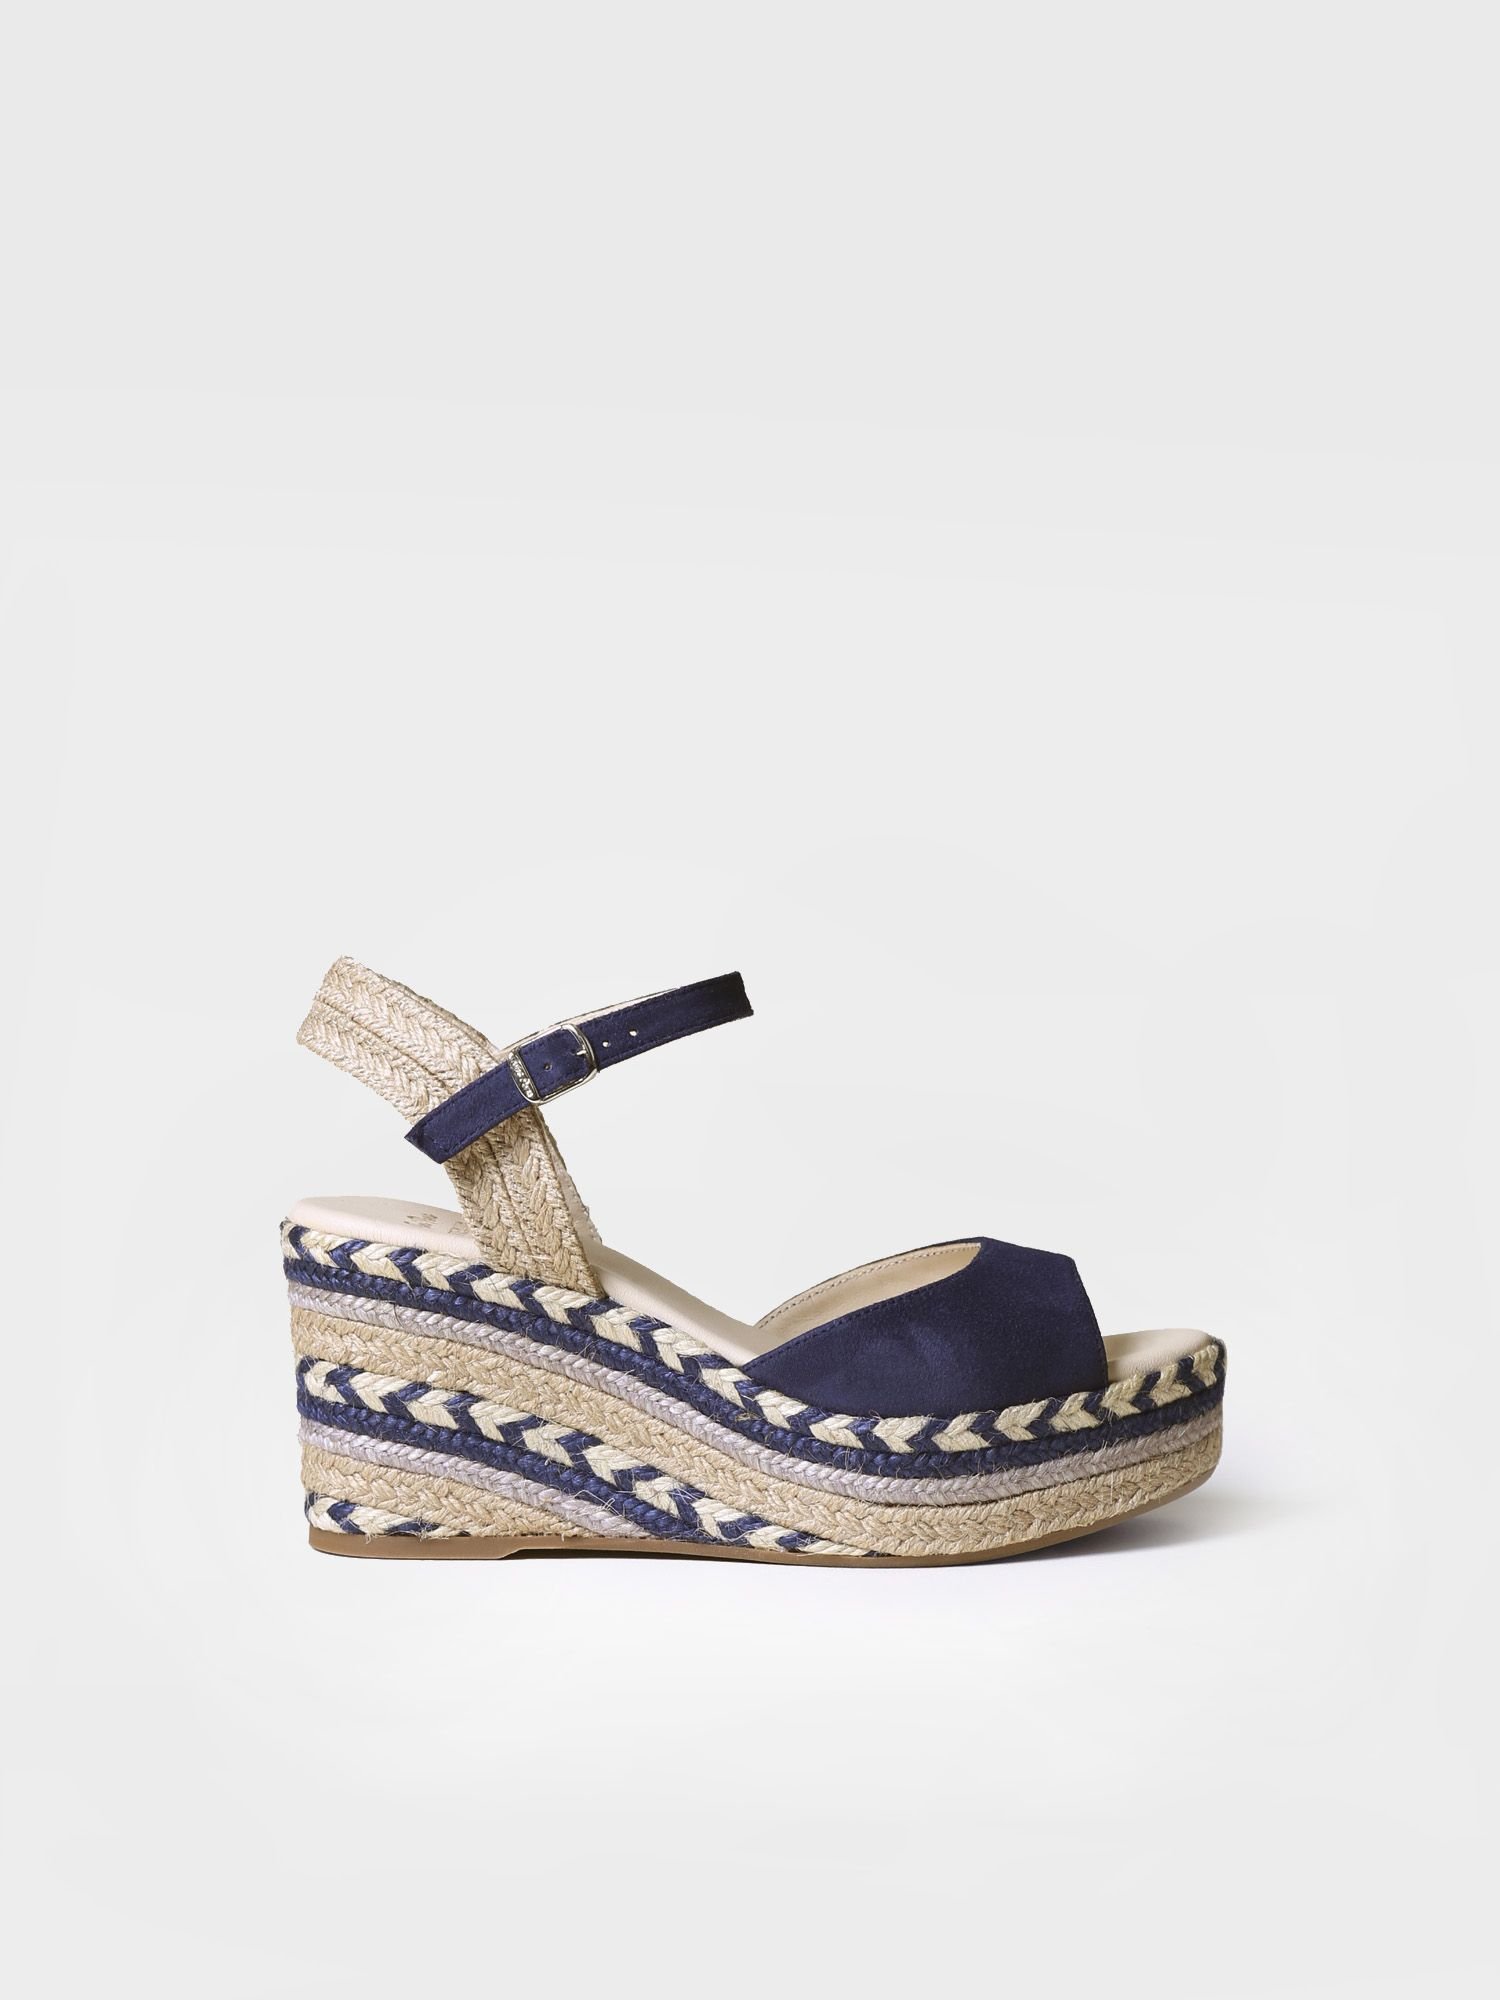 Wedge sandal - PORTO-A